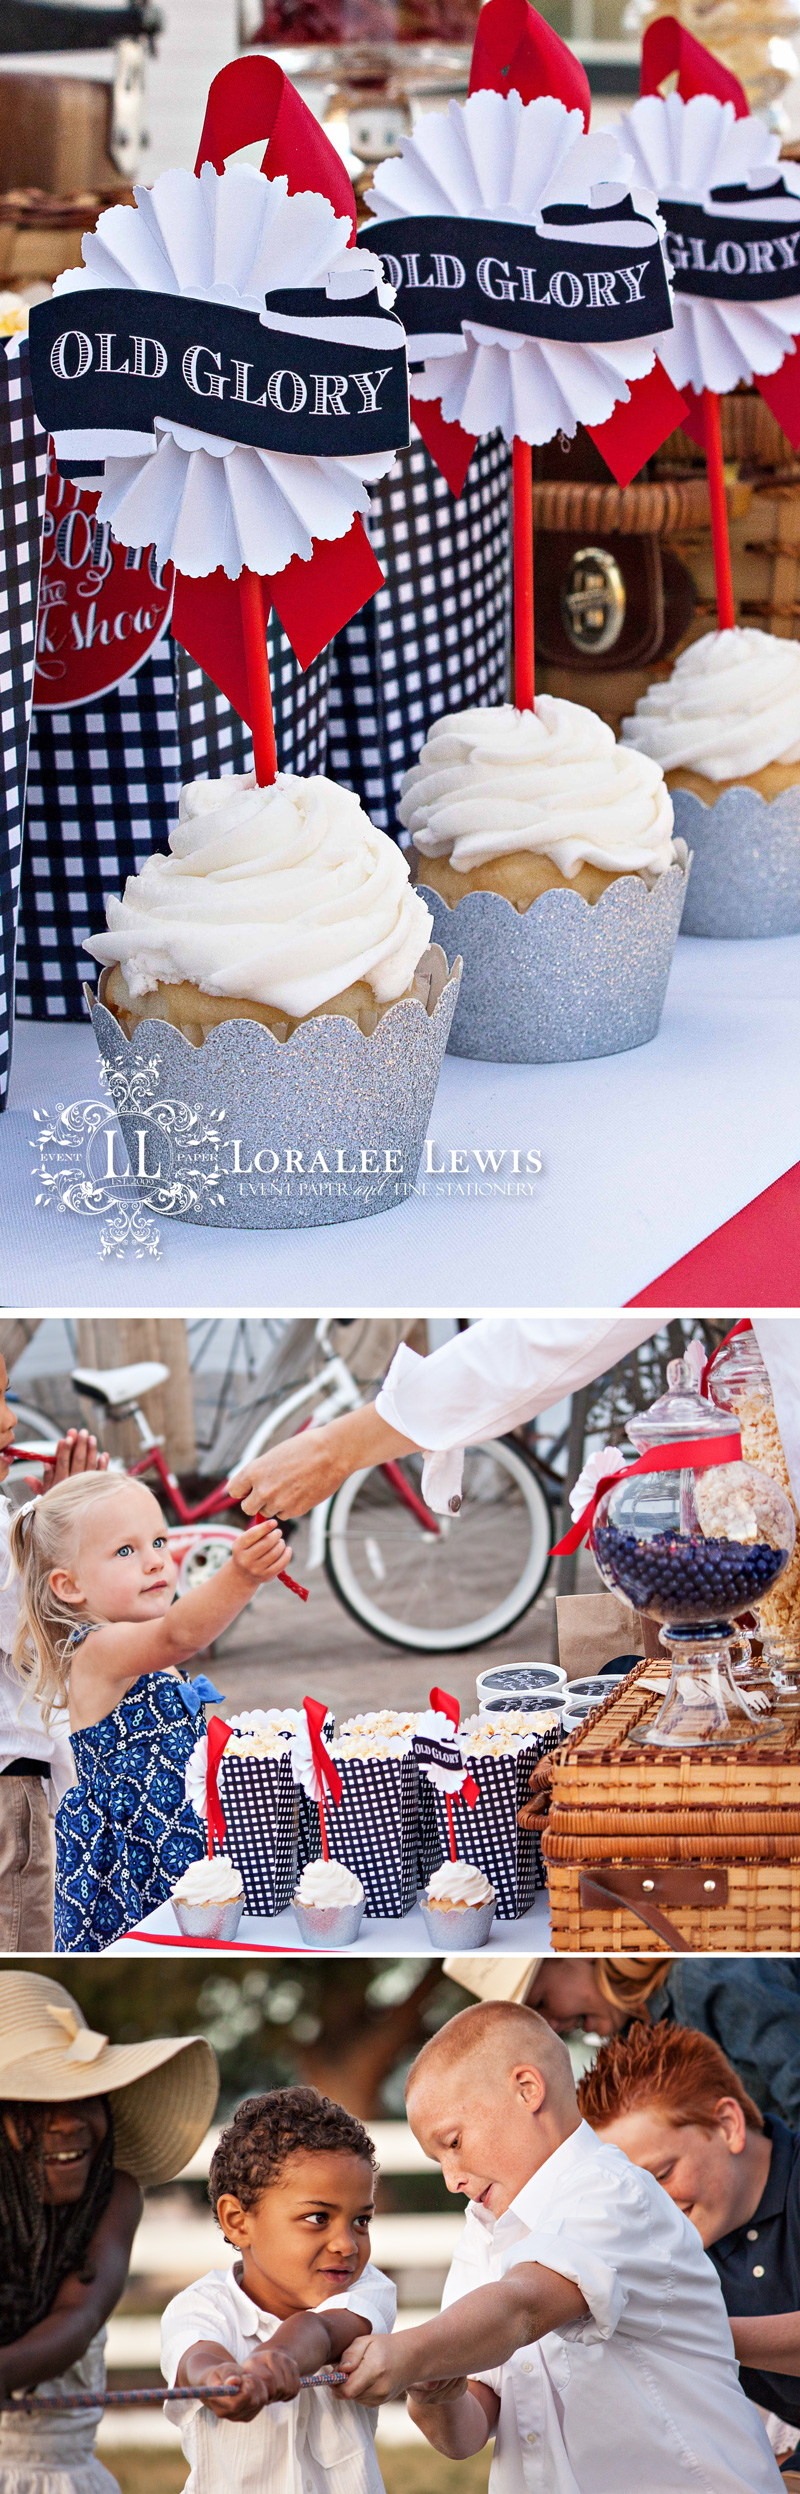 LoraleeLewis-American-Collection11